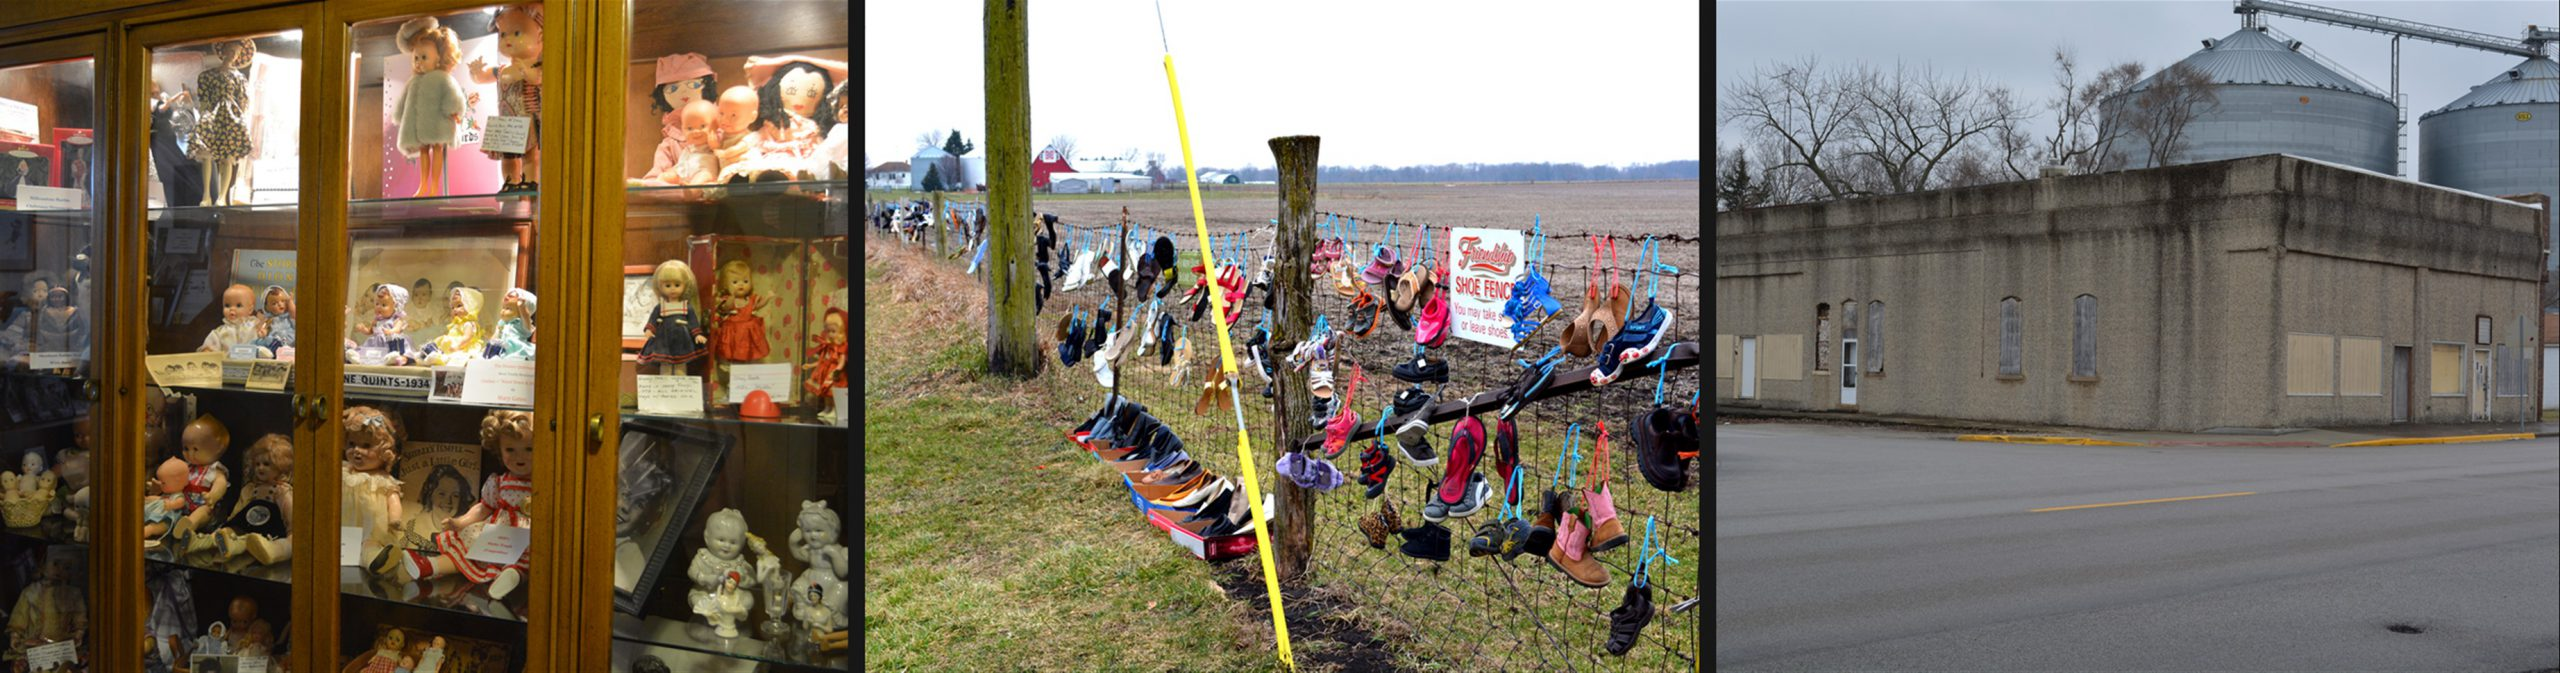 Cornell Illinois Attractions: Amity Township Museum, Friendship Shoe Fence, and Community Building